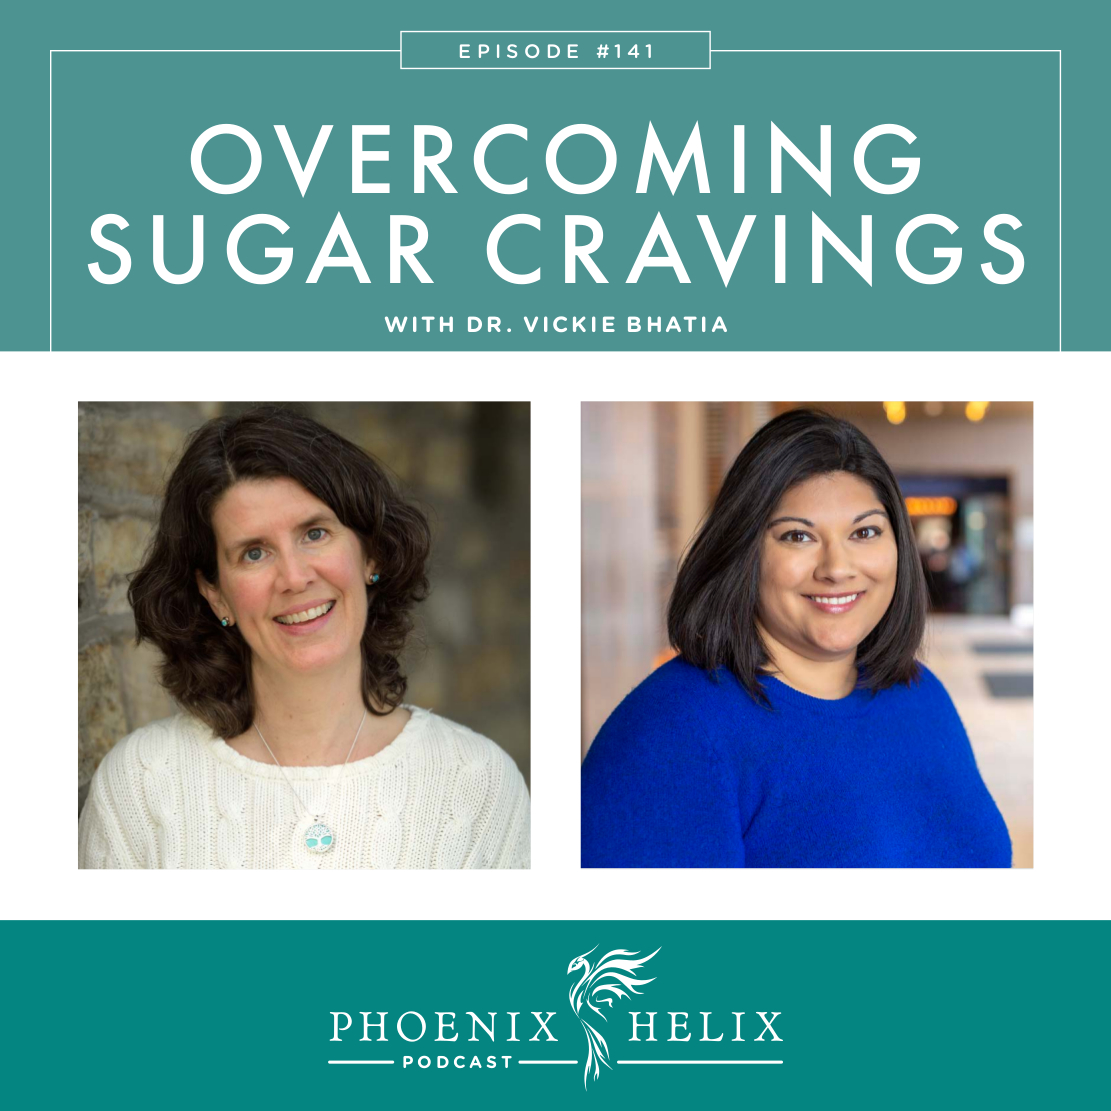 Overcoming Sugar Cravings with Dr. Vickie Bhatia | Phoenix Helix Podcast